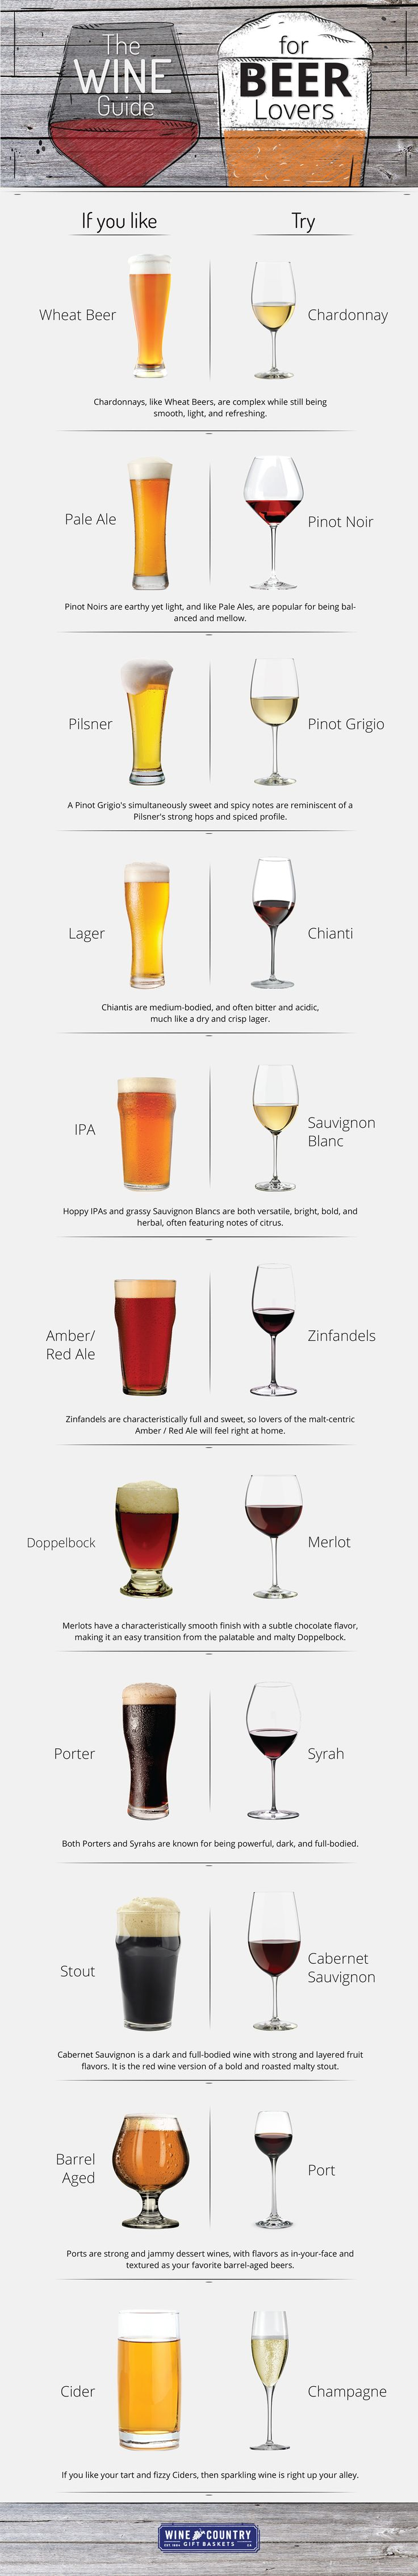 Score! How to persuade your beer lover to join you for a glass of wine. #winning…